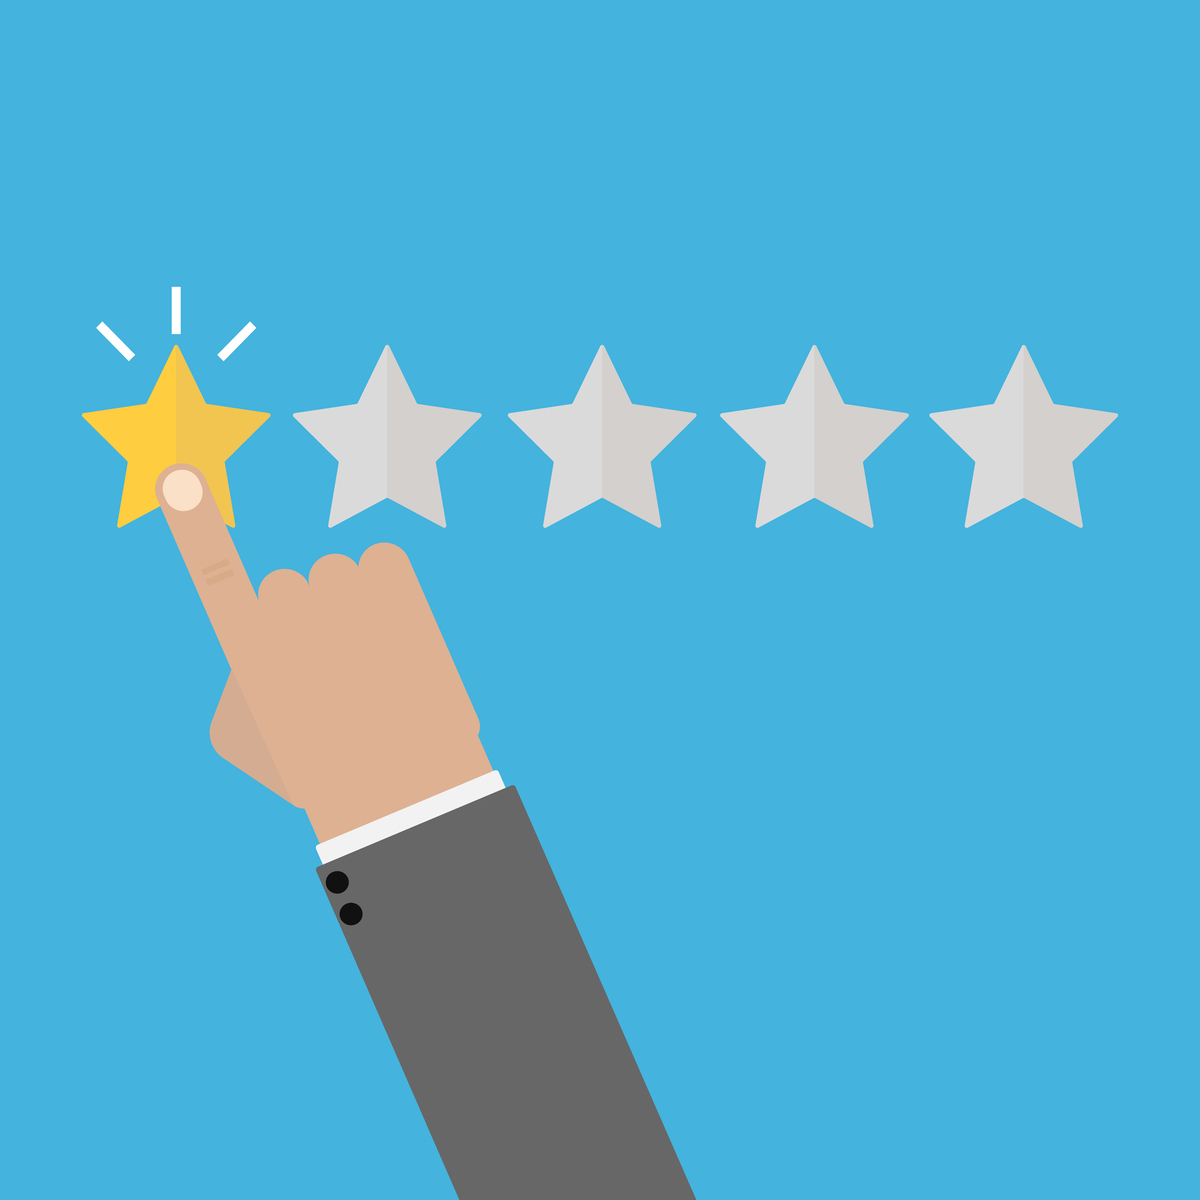 9 Feedback Managers that Monitor, Alert, and Help with Amazon Reviews!